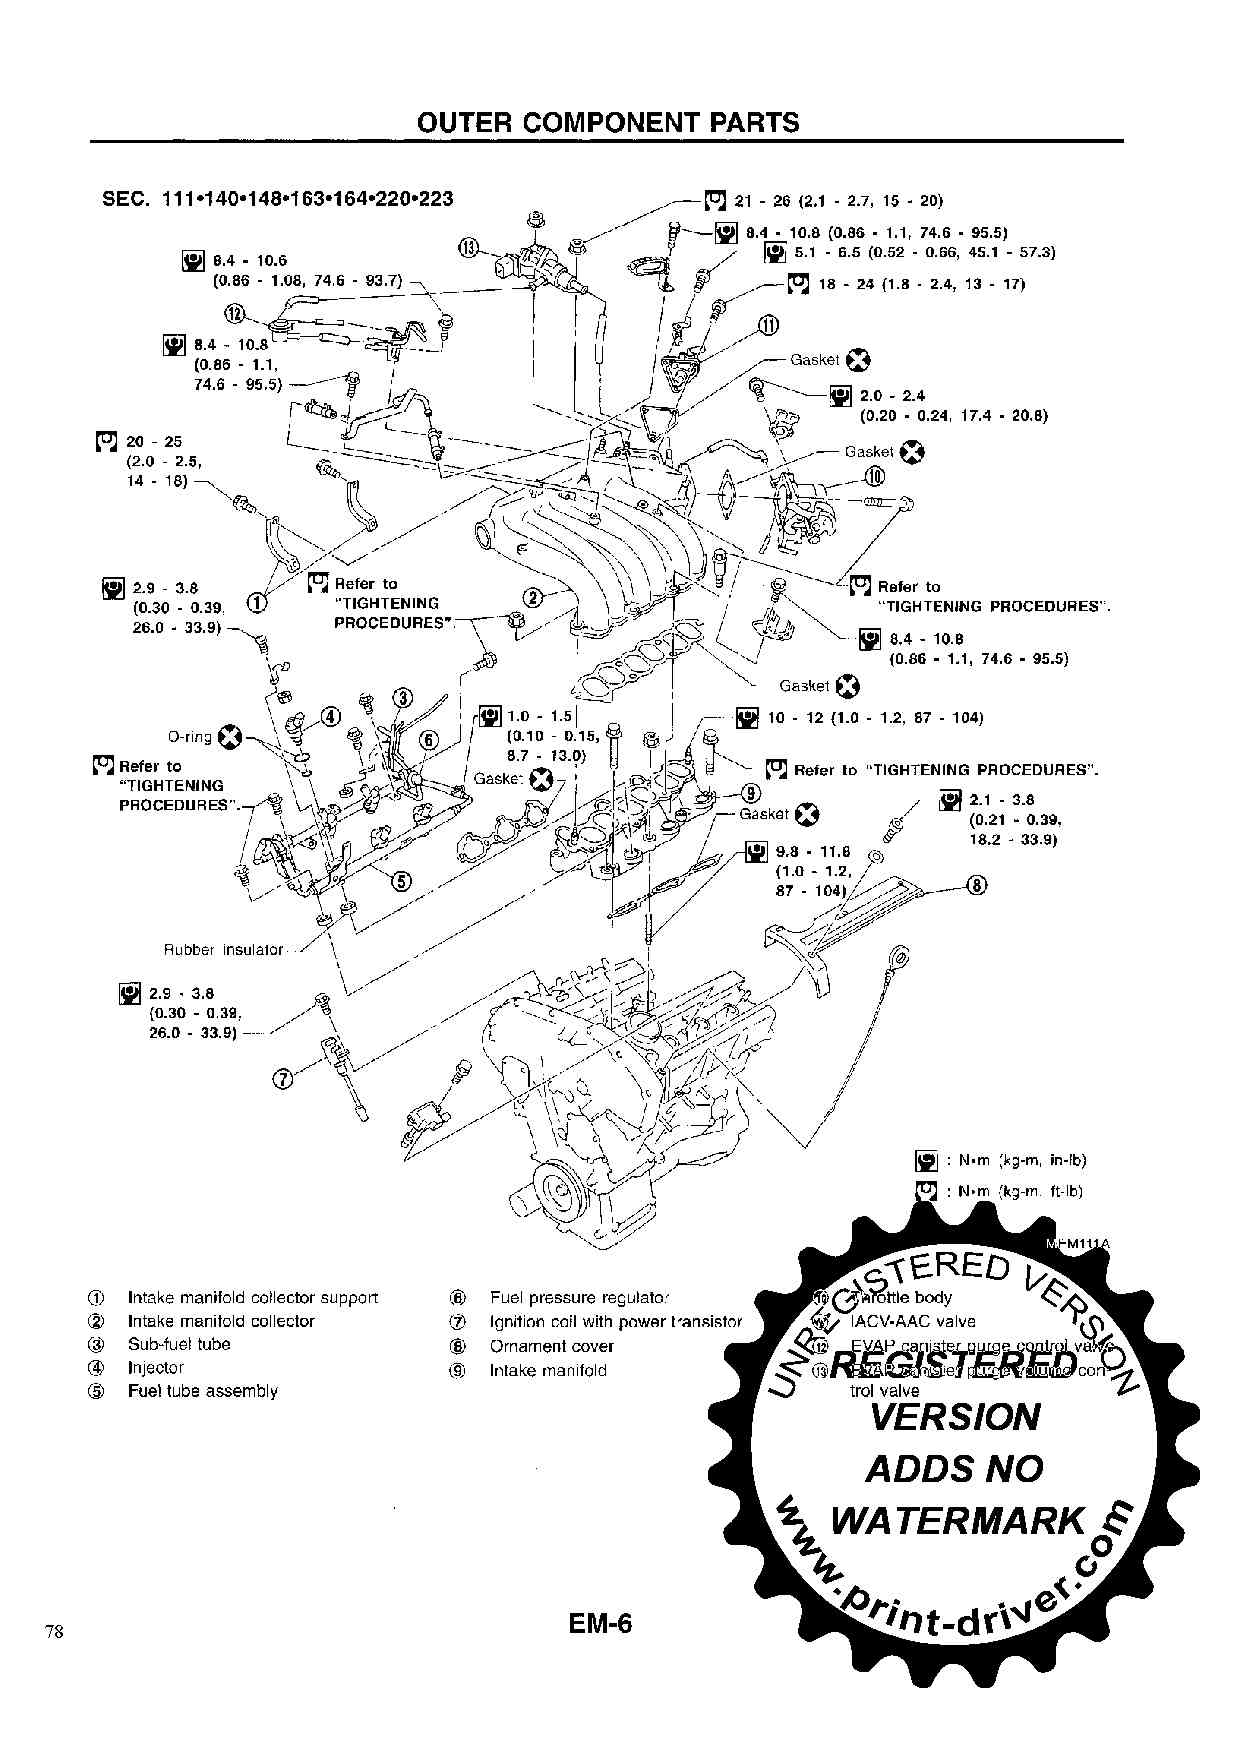 1998 Nissan Maxima Parts Diagram Wiring Engine I Have A 98 That Has Bad Oil Leak And Cant Find 2000